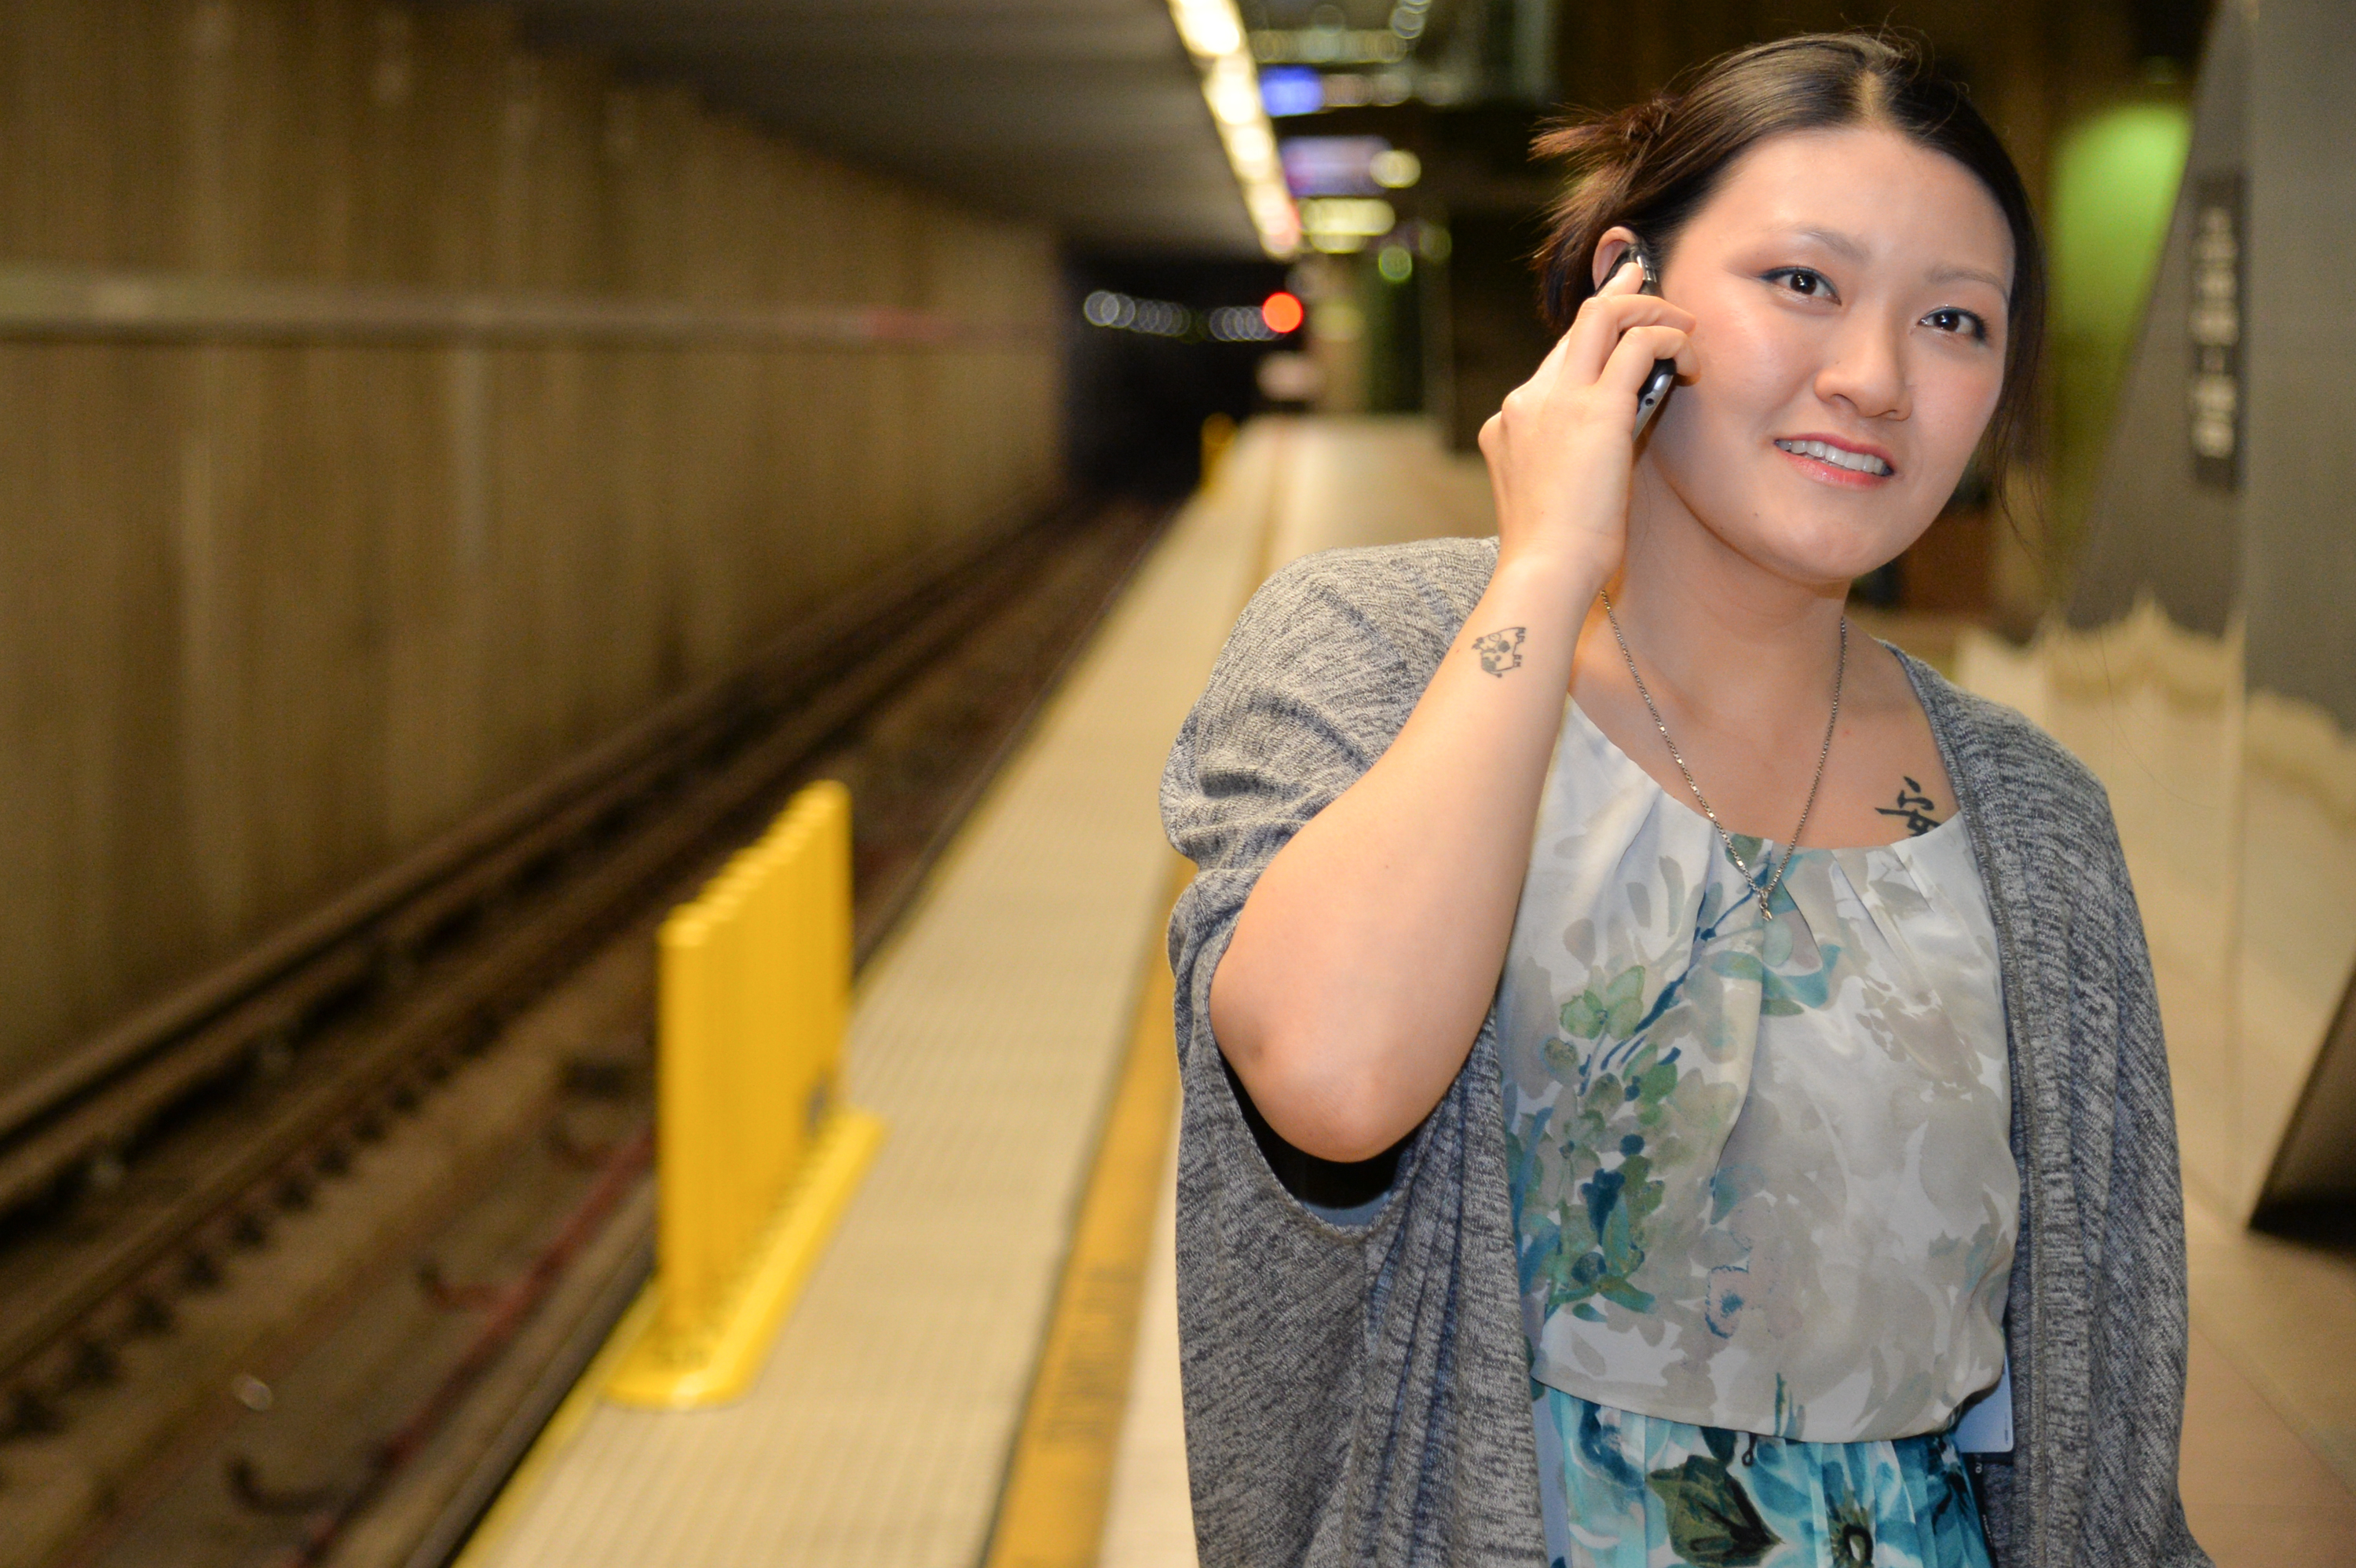 My colleague Anna enjoys a nonsensical cell phone conversation deep beneath Union Station. Photo: Steve Hymon/Metro.